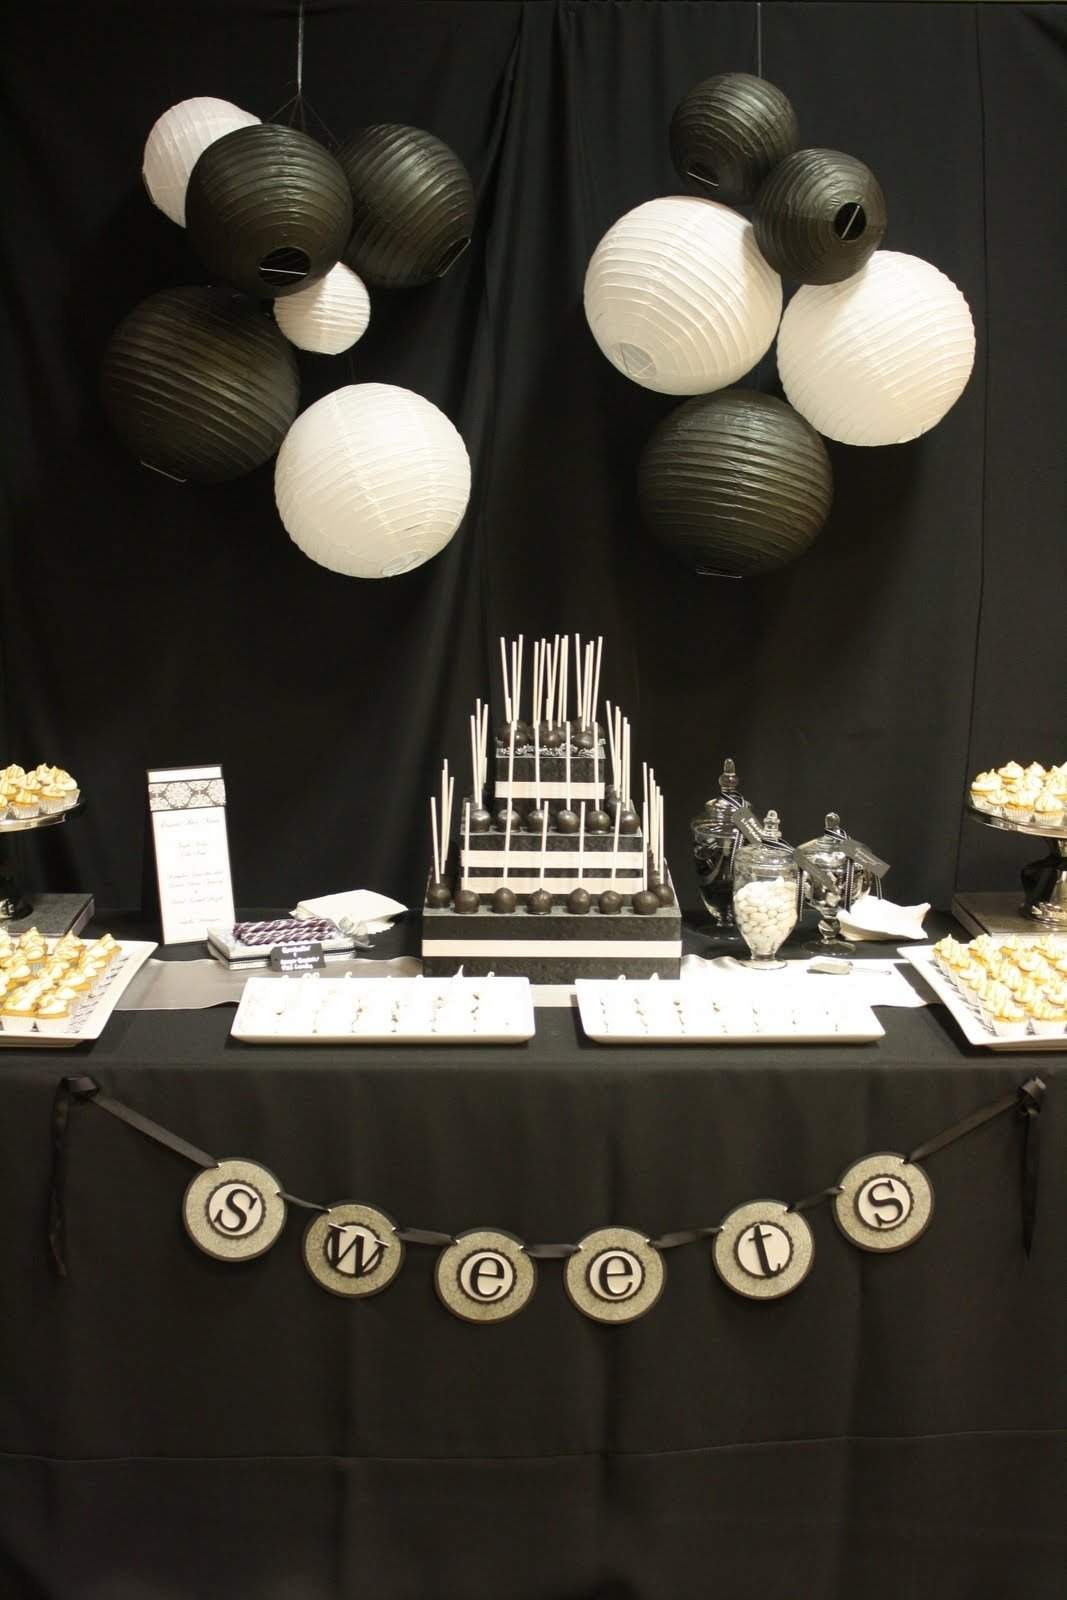 10 Unique Black And White Party Decorations Ideas 56 elegant black and white wedding dessert tables white cake pops 1